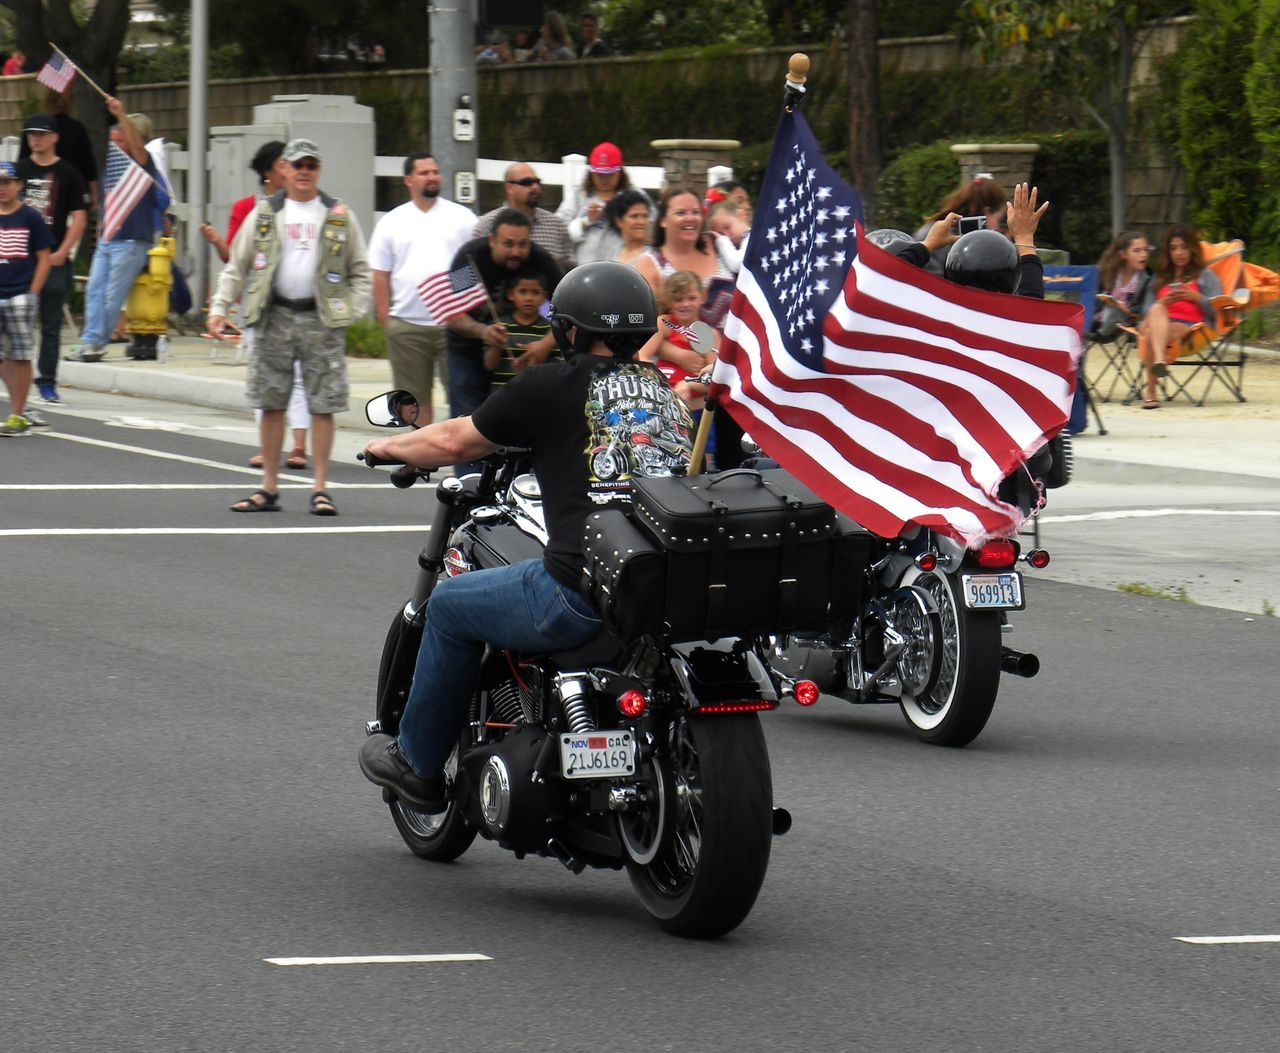 Taking Photos Enjoying Life Hanging Out Bikers Outdoors Veterans Memorial Day West Coast Thunder Feel The Journey American Flag Motorcycle Motorcyclepeople Harley Davidson Bike Run California People Memorialday Color Photography Showing Support Colour Of Life